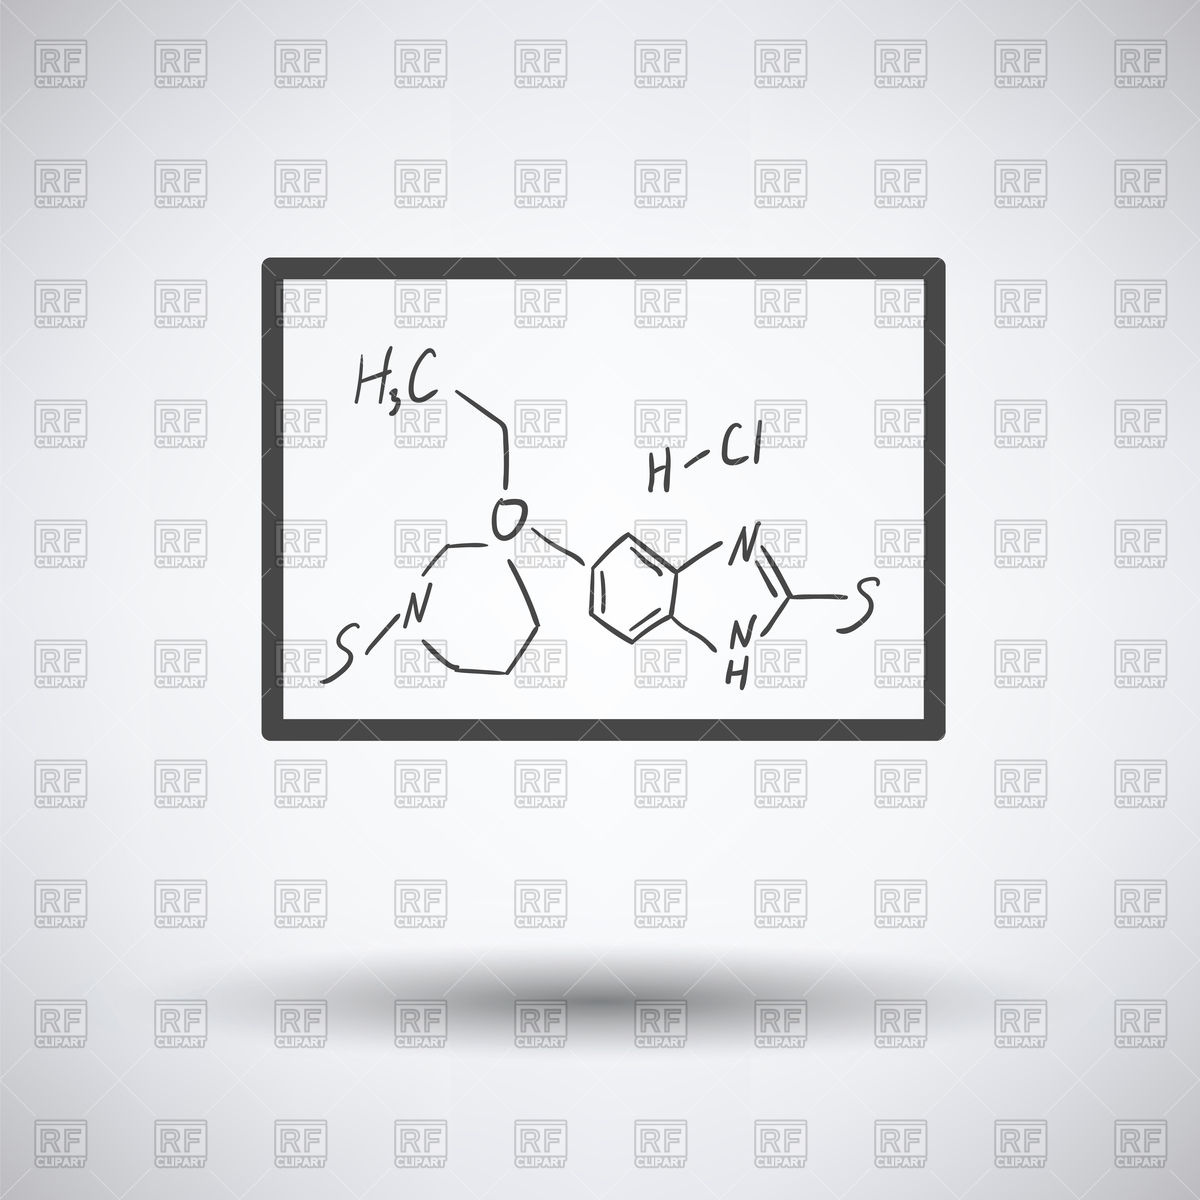 1200x1200 Icon Of Chemistry Formula On Classroom Whiteboard Vector Image